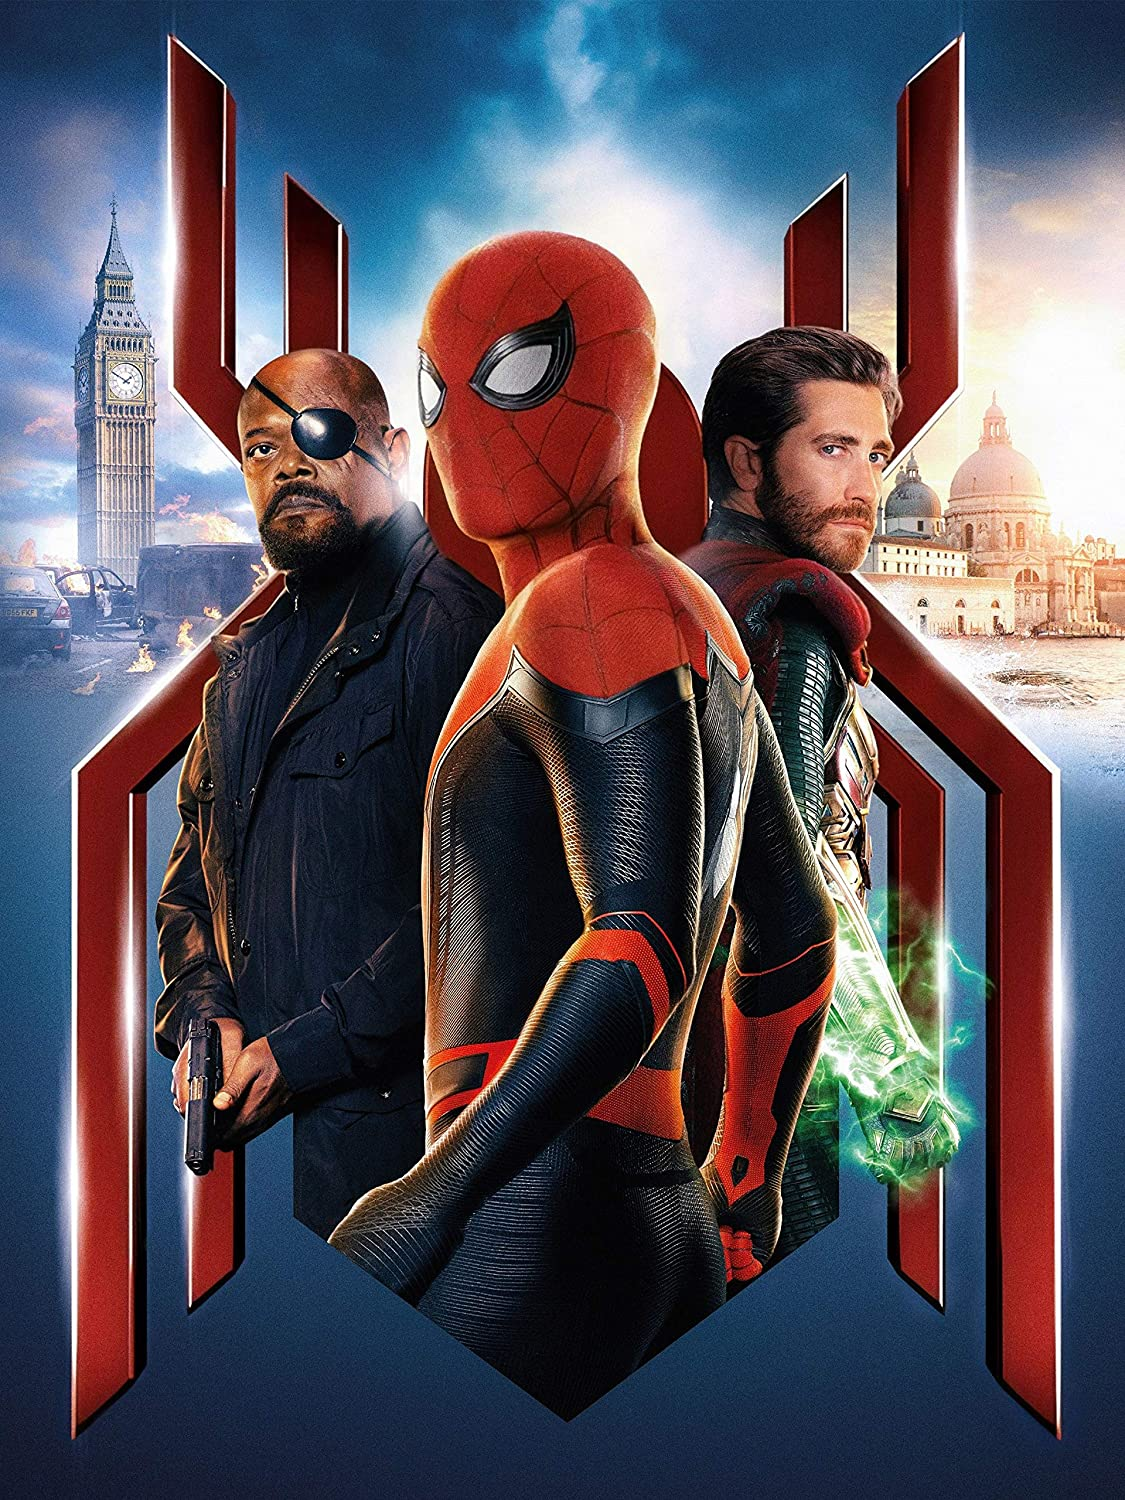 Zero.o Spiderman Far from Home Poster Size 18 X 24 Inches Wall Poster Print